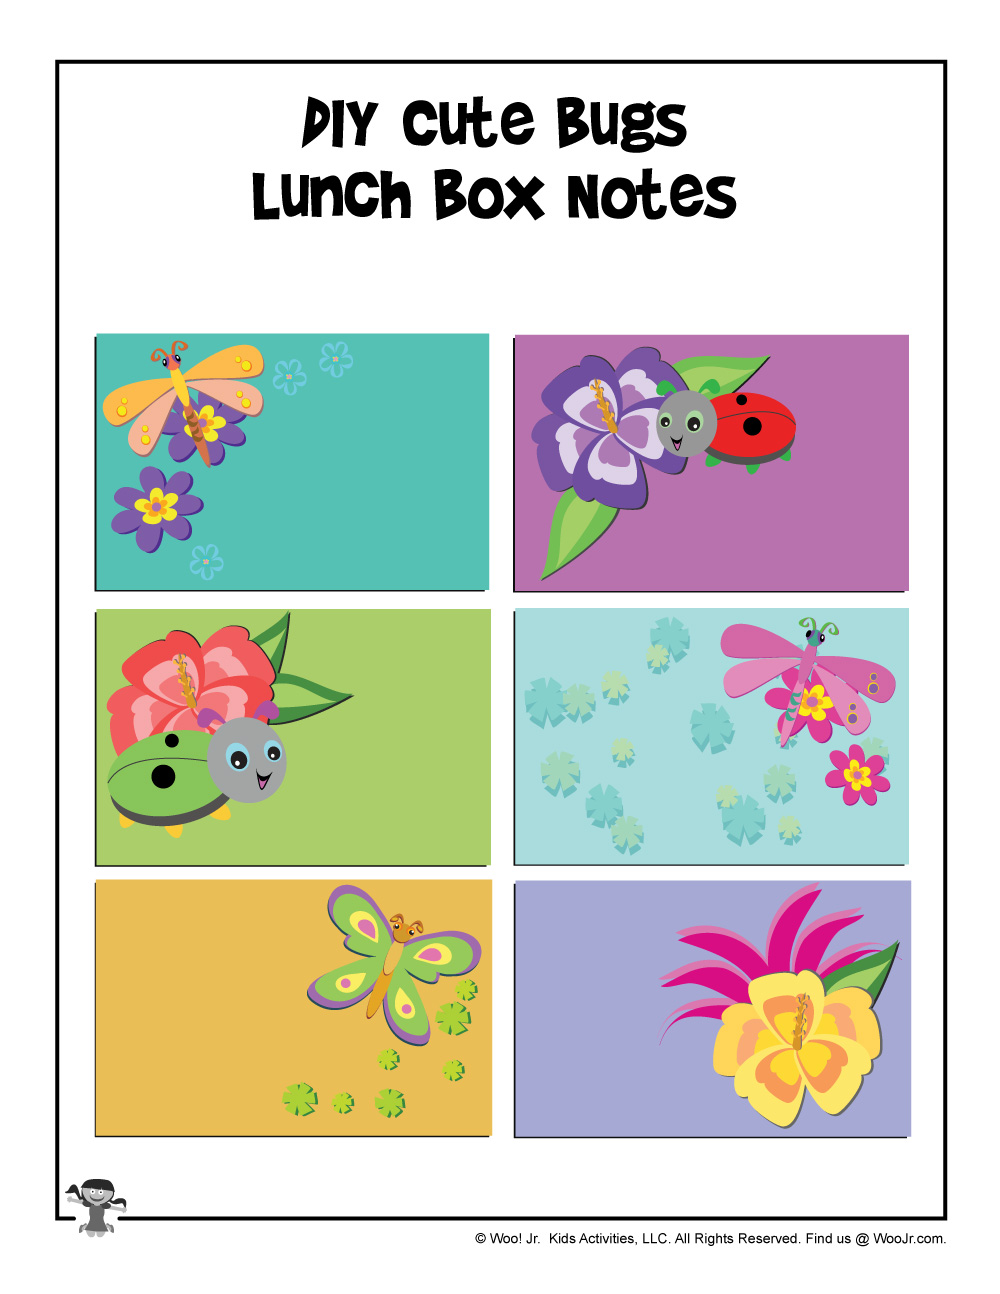 Write Your Own Printable Lunchbox Notes | Woo! Jr  Kids Activities